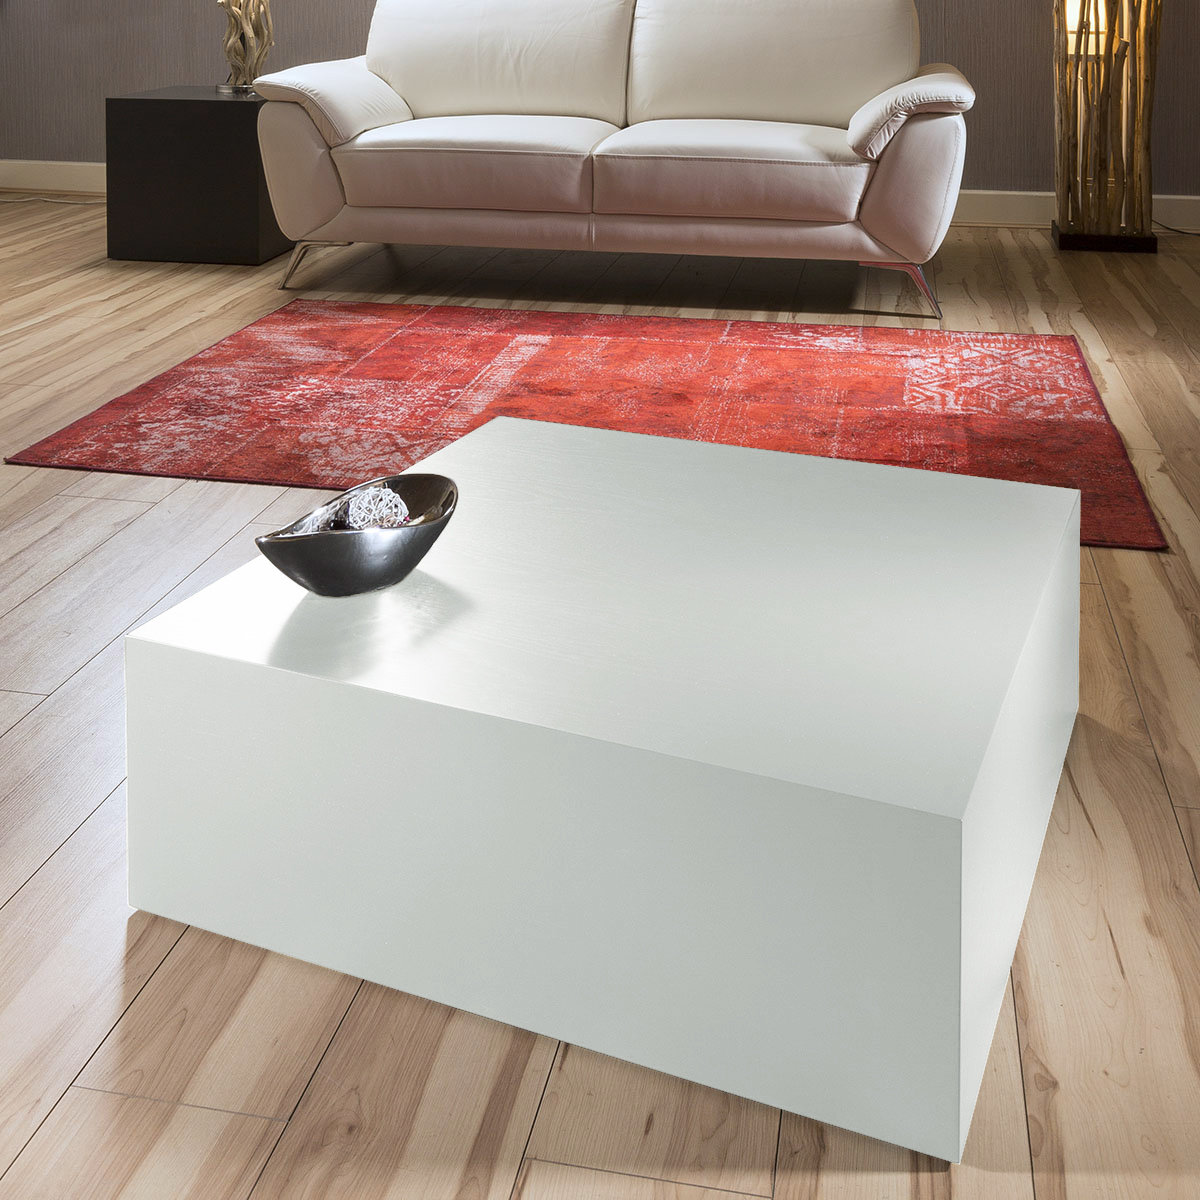 Luxury Modern Low 80x80cm Square Coffee Table Silver Grey